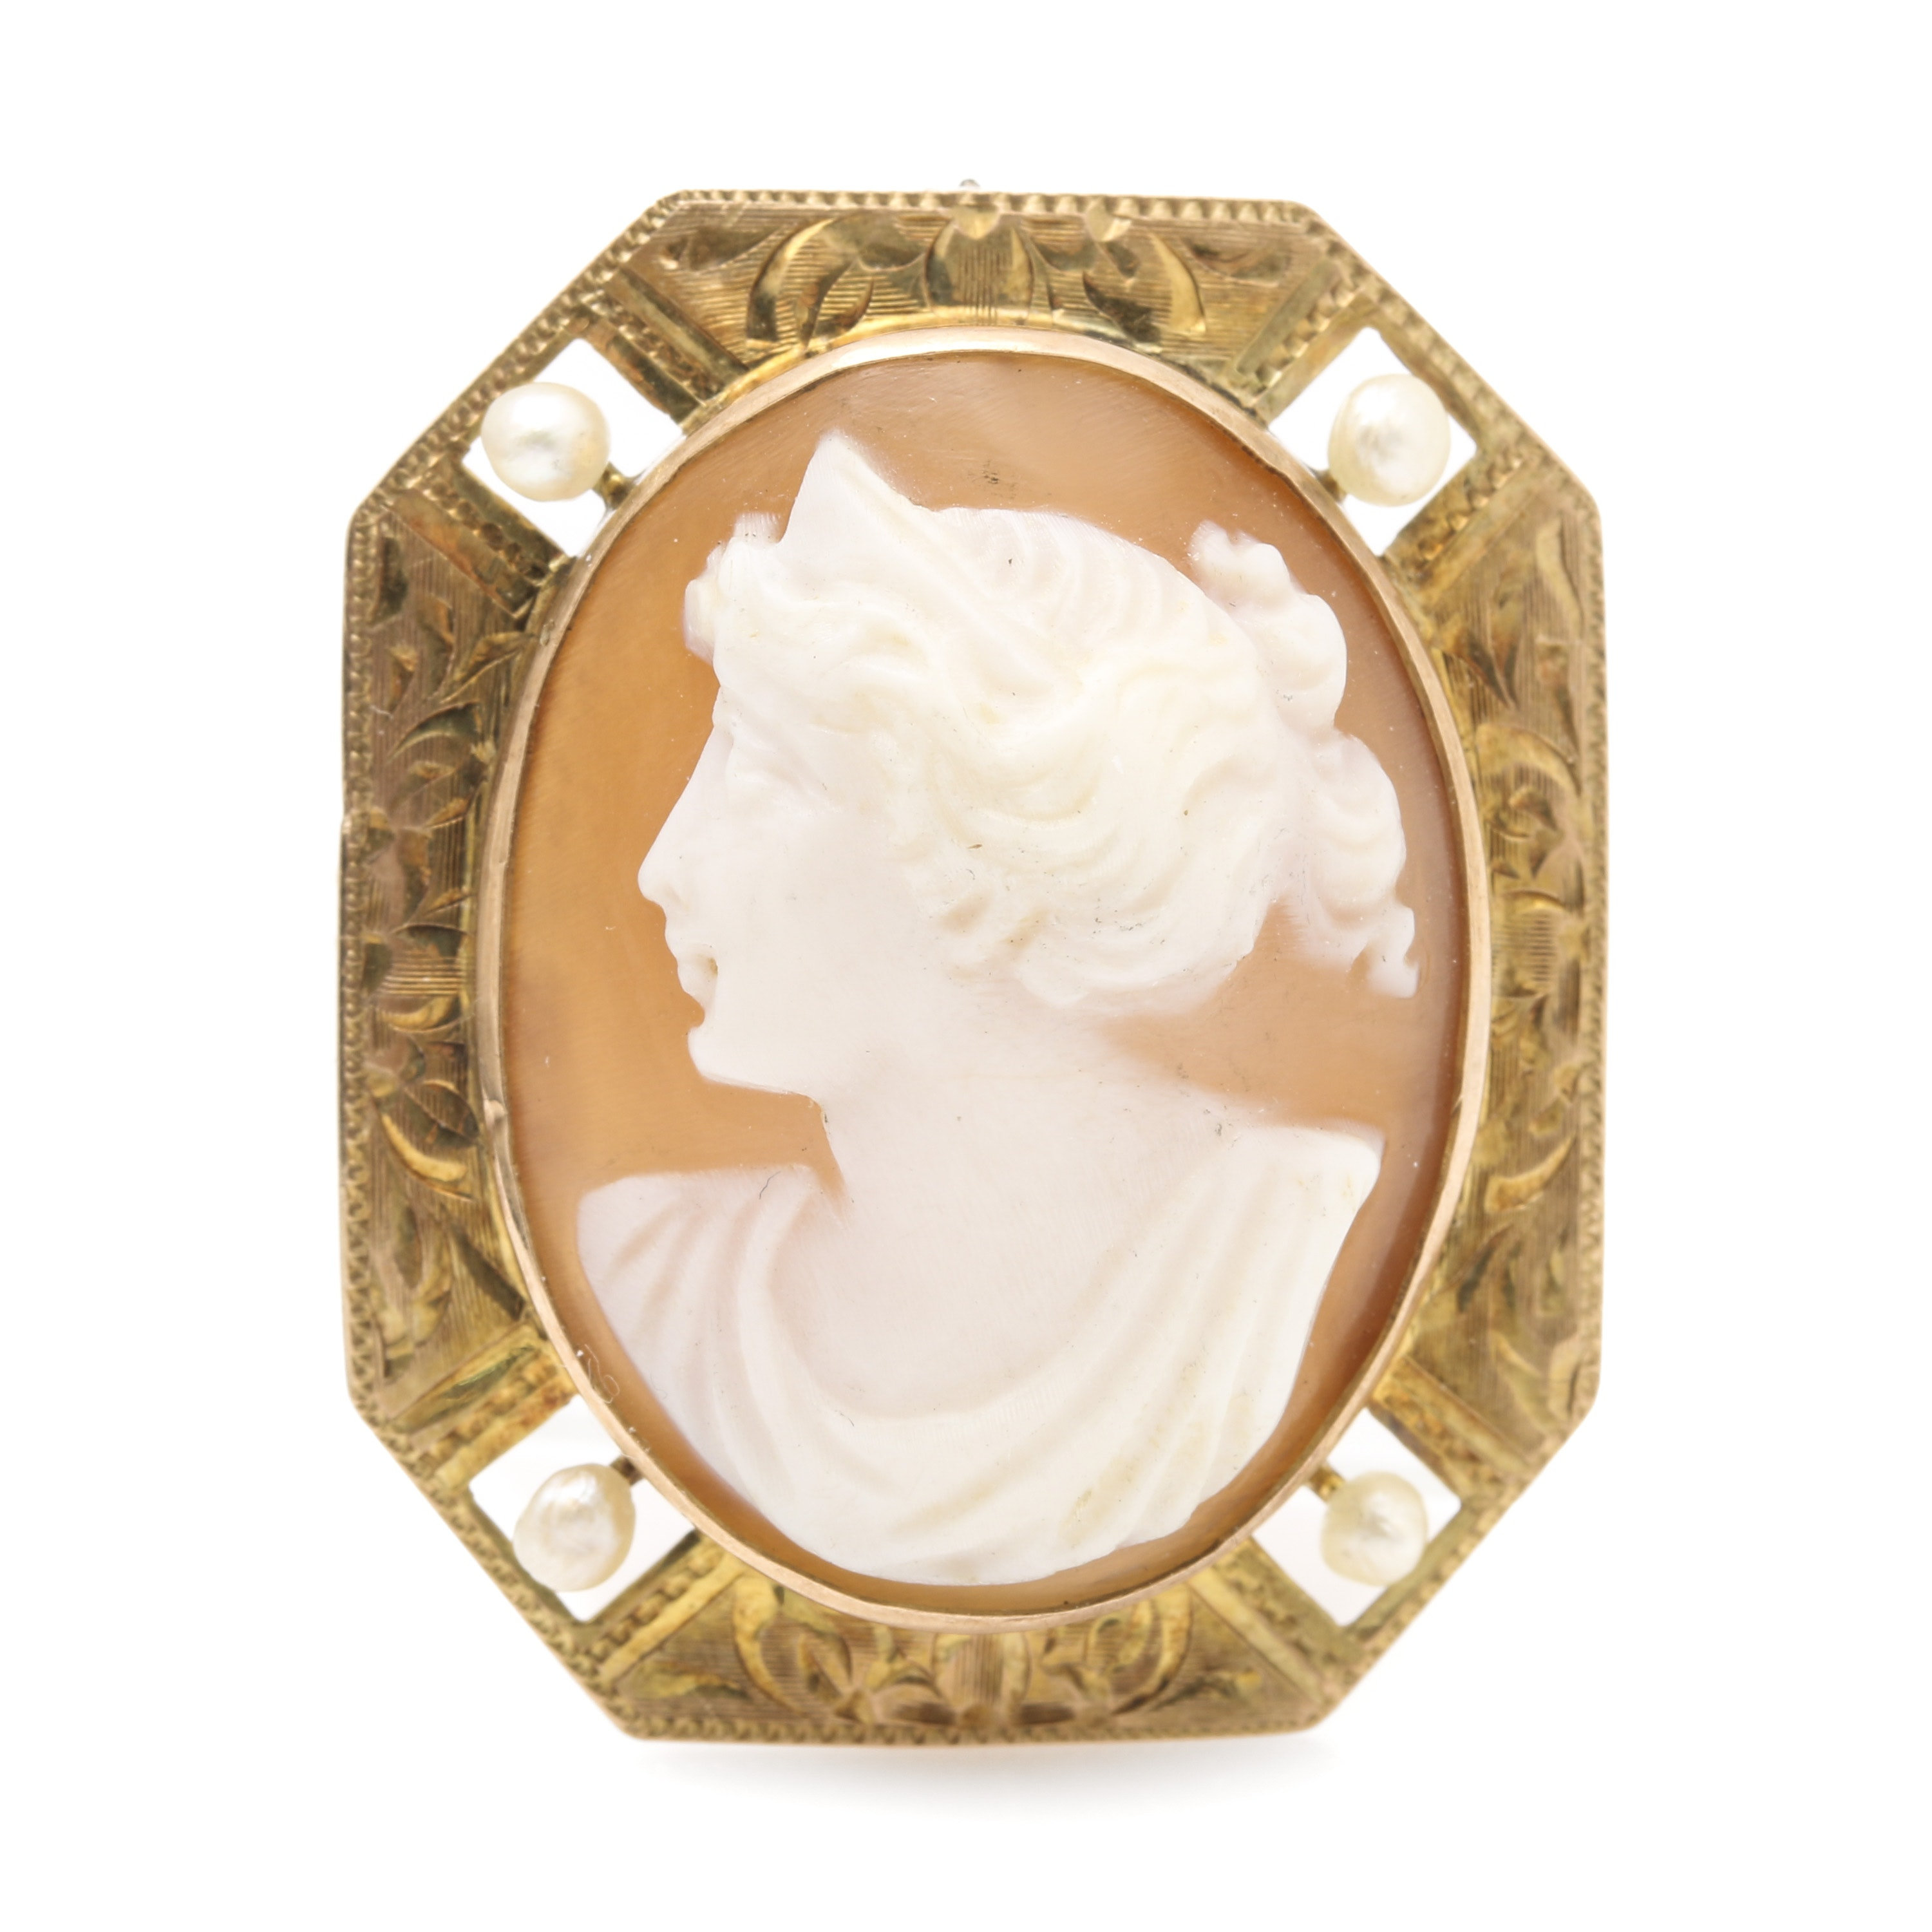 Vintage 10K Yellow Gold Carved Helmet Shell Cameo Brooch with Cultured Pearls